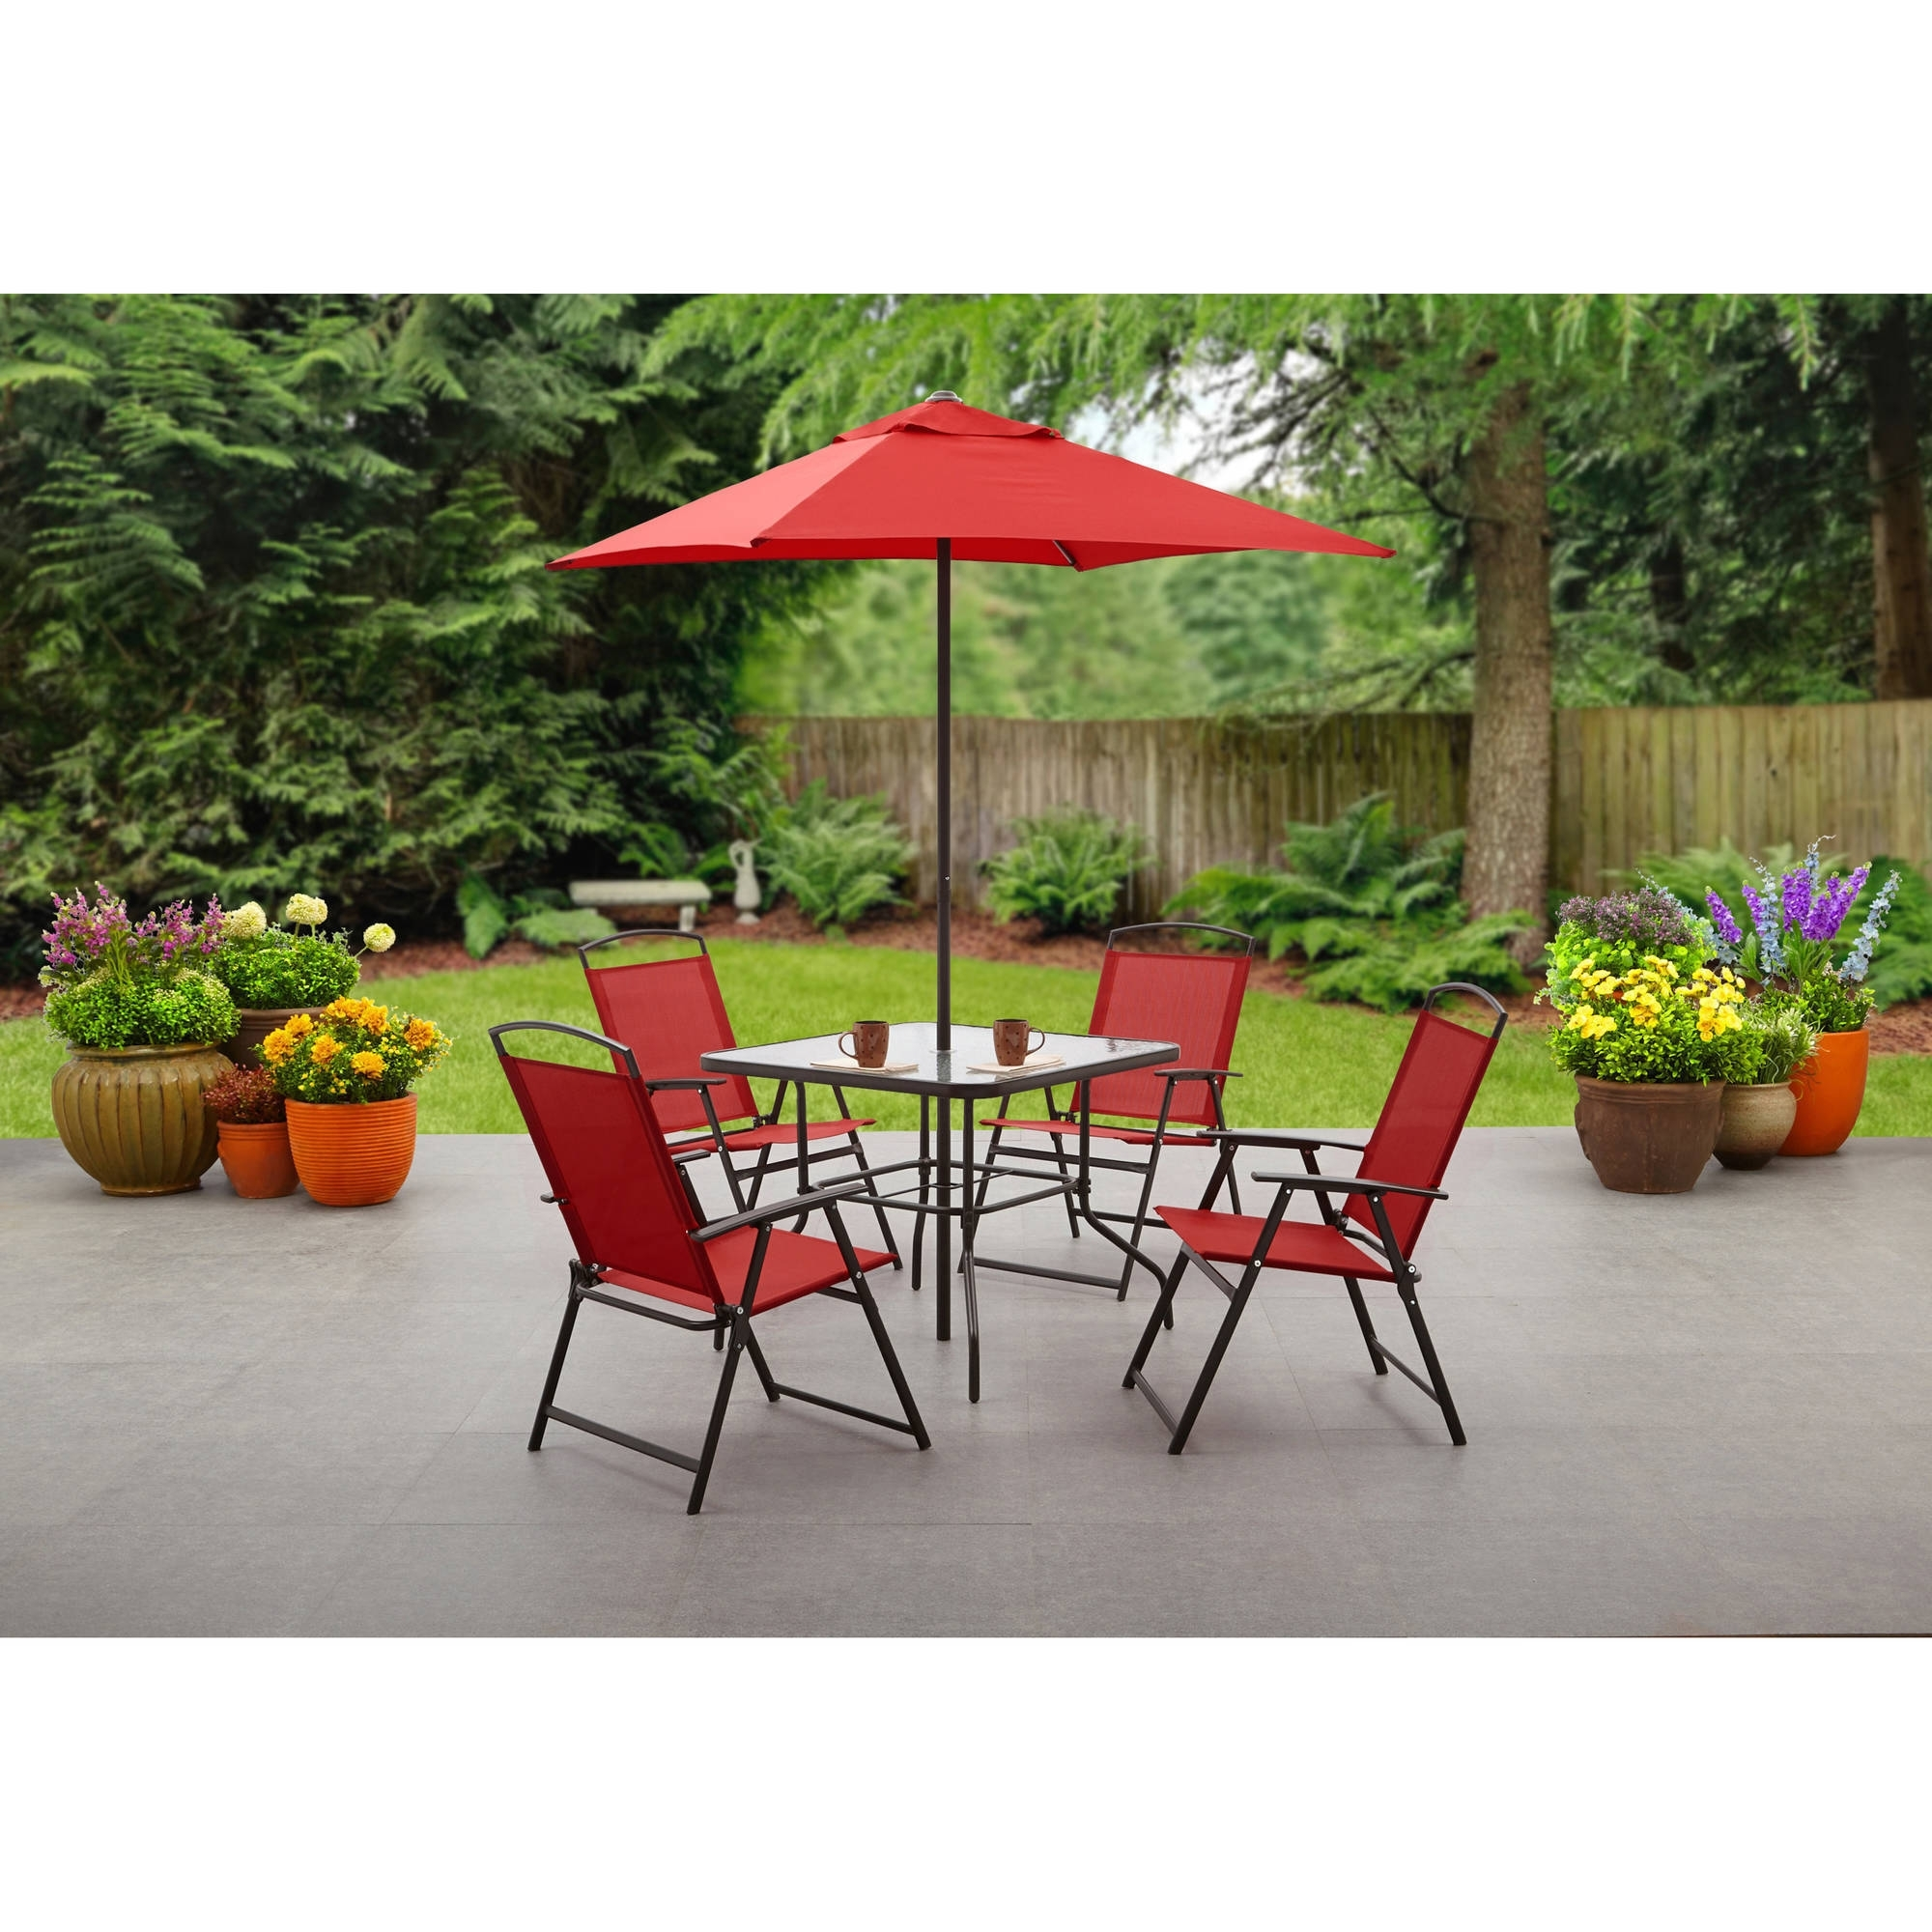 Popular Small Patio Tables With Umbrellas With Regard To Mainstays Albany Lane 6 Piece Folding Dining Set, Multiple Colors (Gallery 20 of 20)